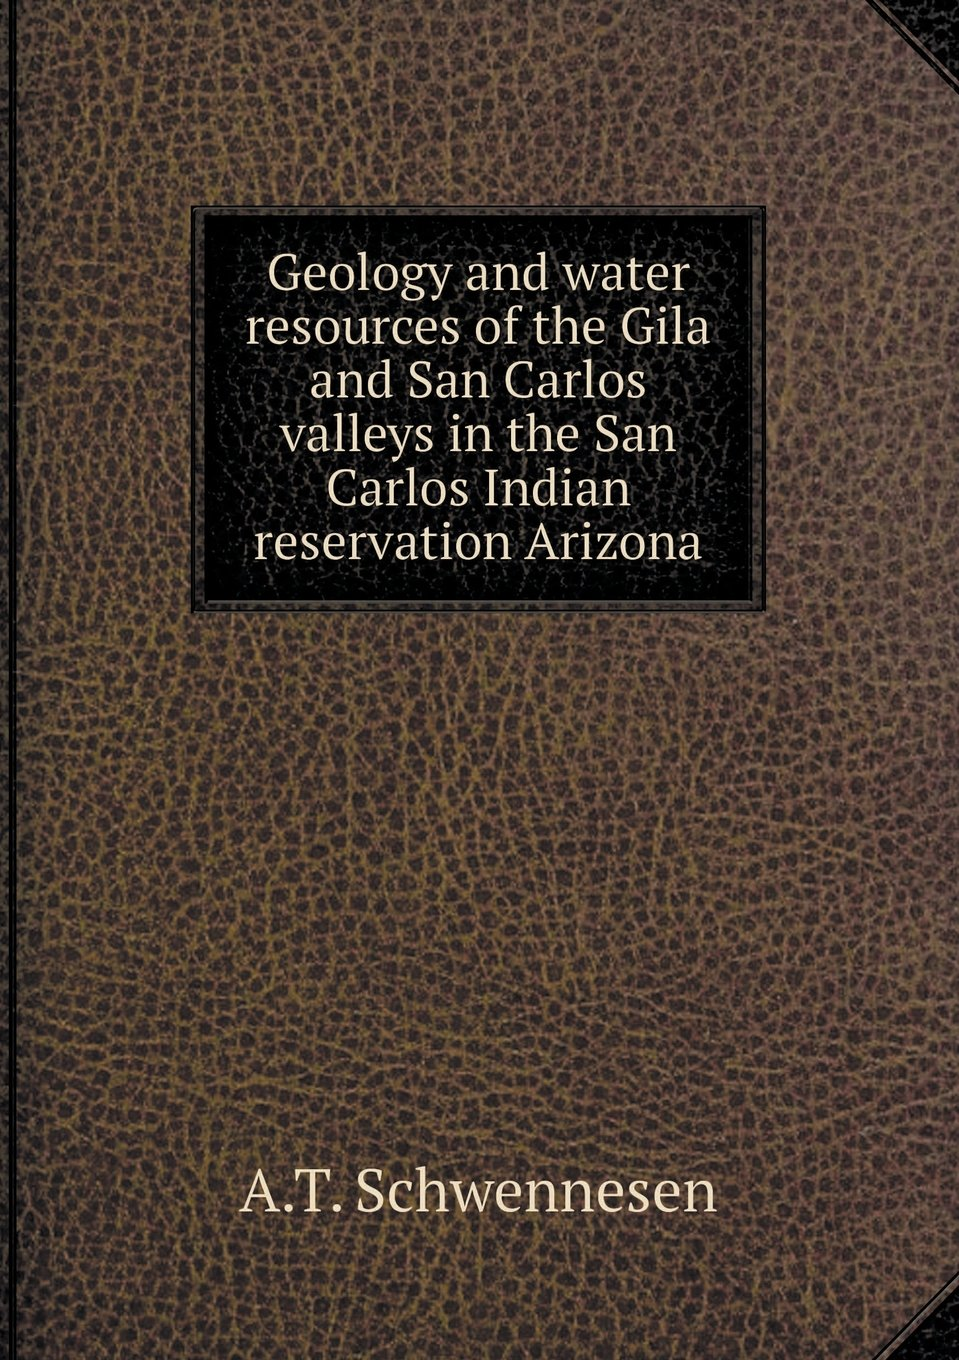 Download Geology and water resources of the Gila and San Carlos valleys in the San Carlos Indian reservation Arizona pdf